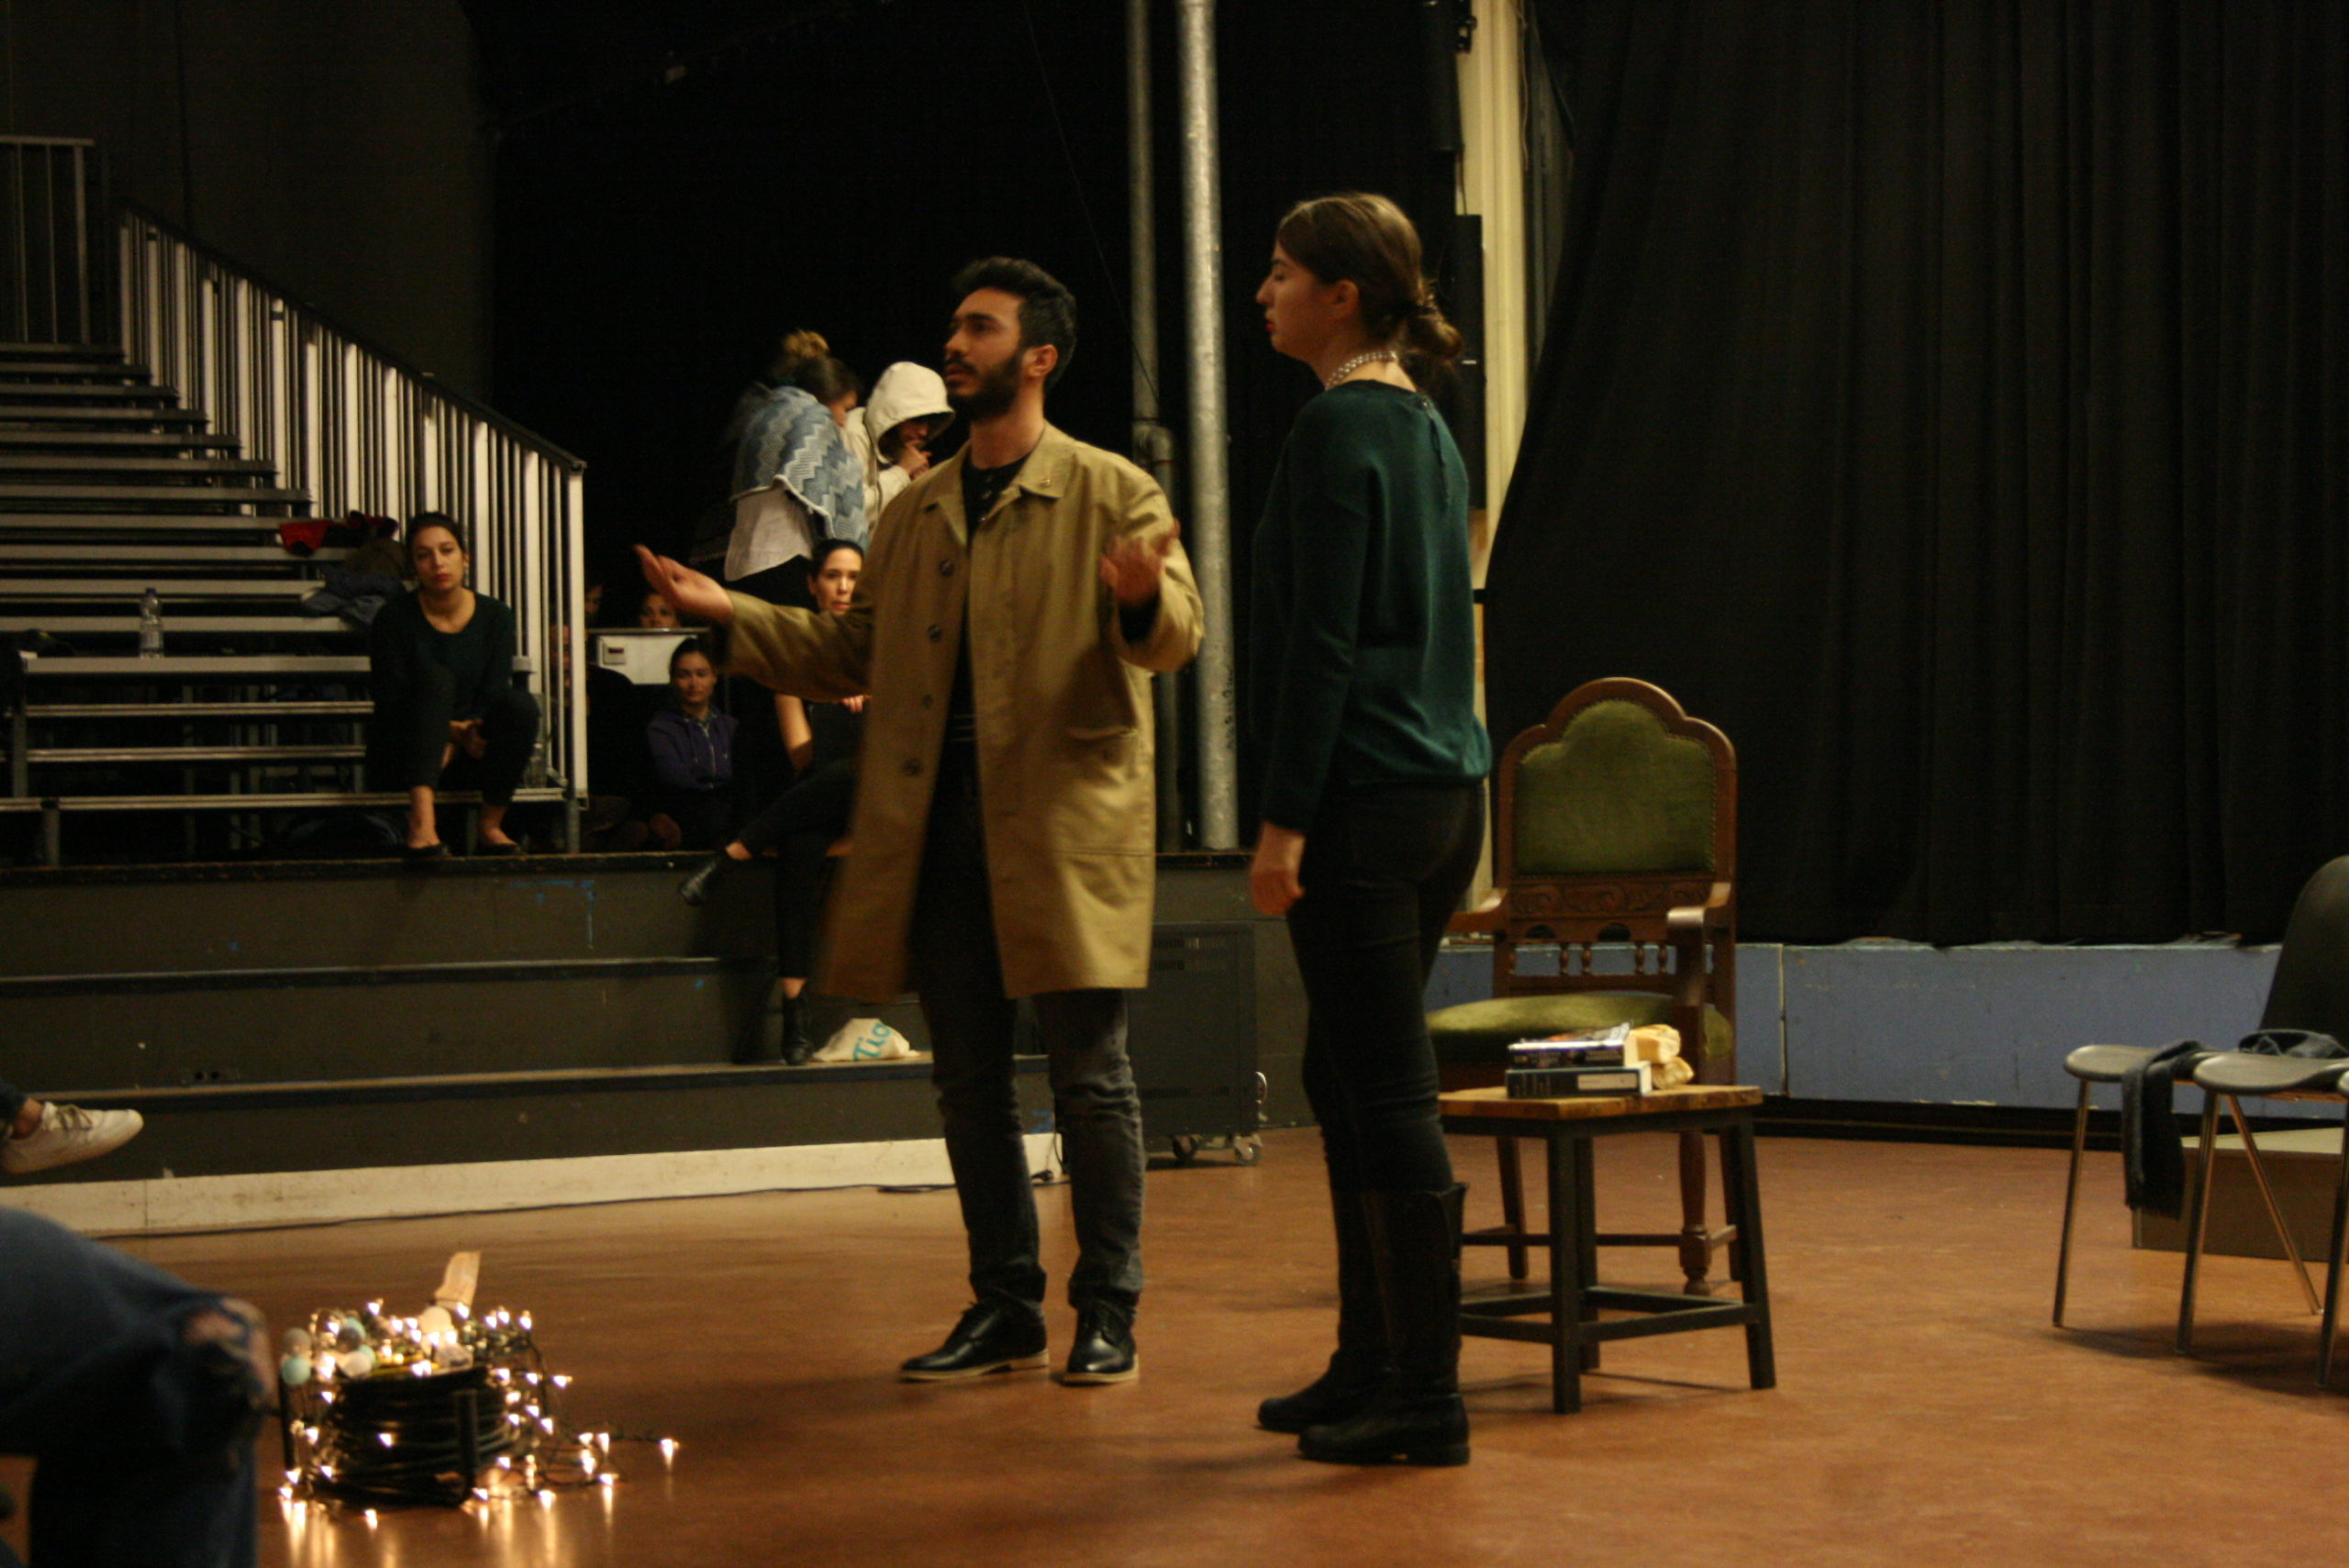 """Photo from the show """"Skin of our Teeth"""". Two actors are on stage, one dressed like a 1920s madame and a man wearing a beige half-long coat. He lifts is arms in wonder"""